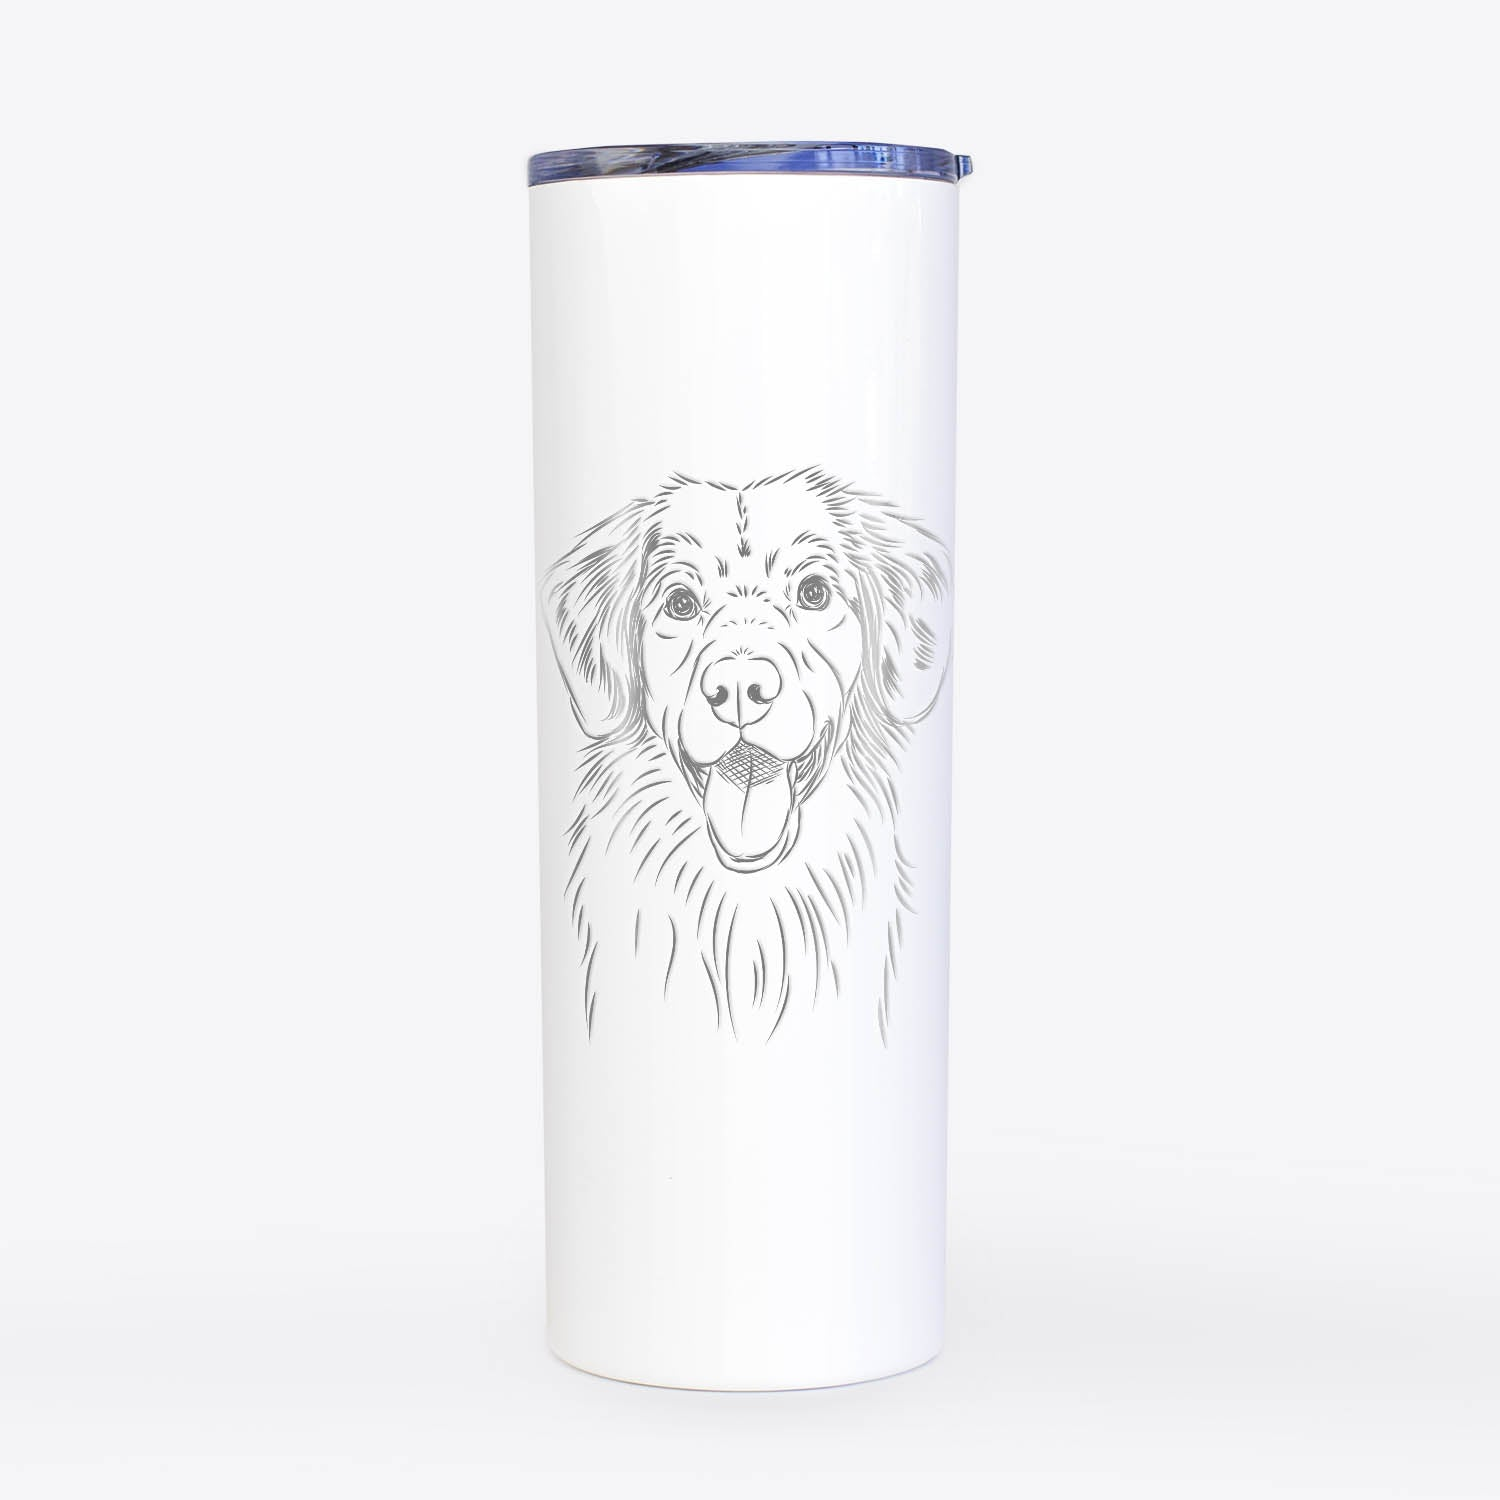 Weston the Nova Scotia Duck Tolling Retriever - 20oz Skinny Tumbler